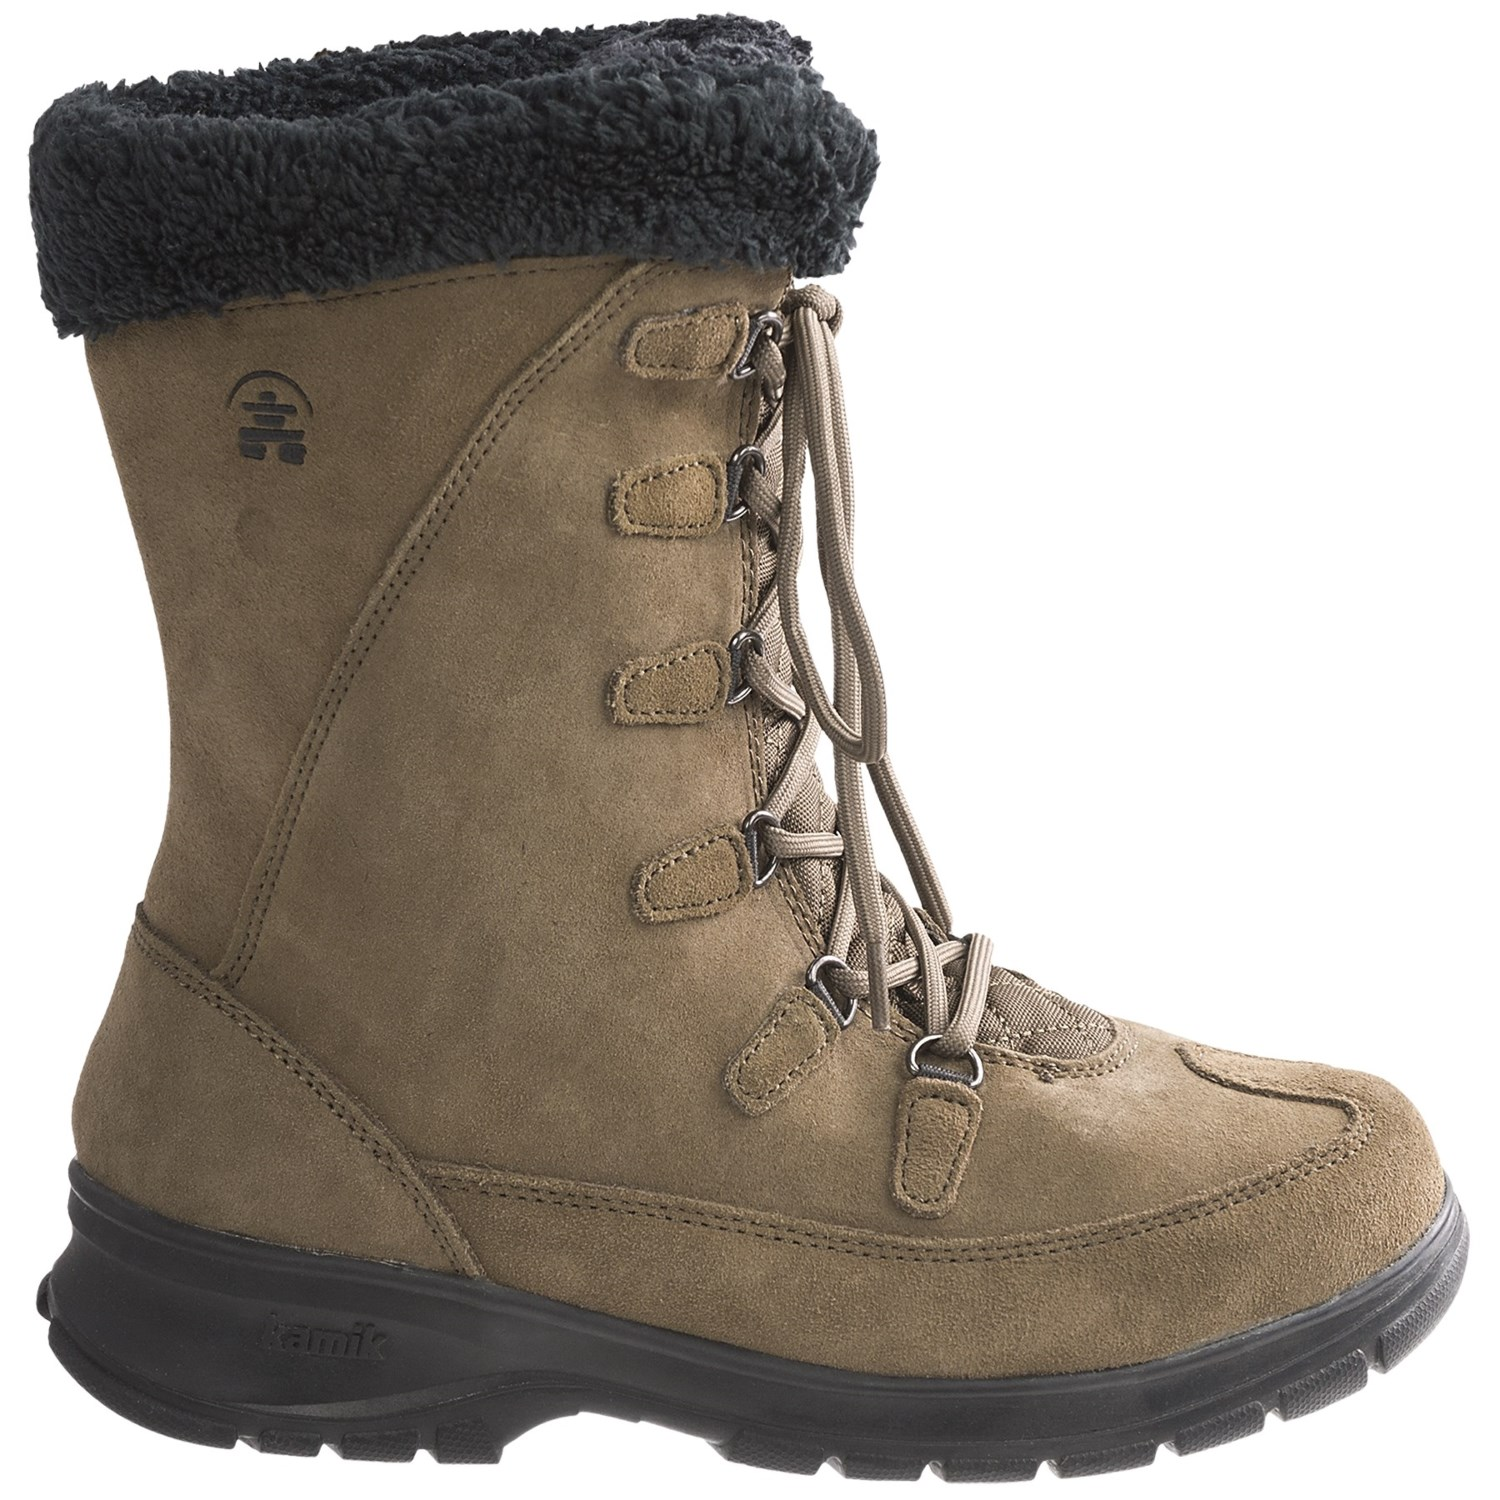 Kamik Moscow Winter Boots (For Women) 6257K